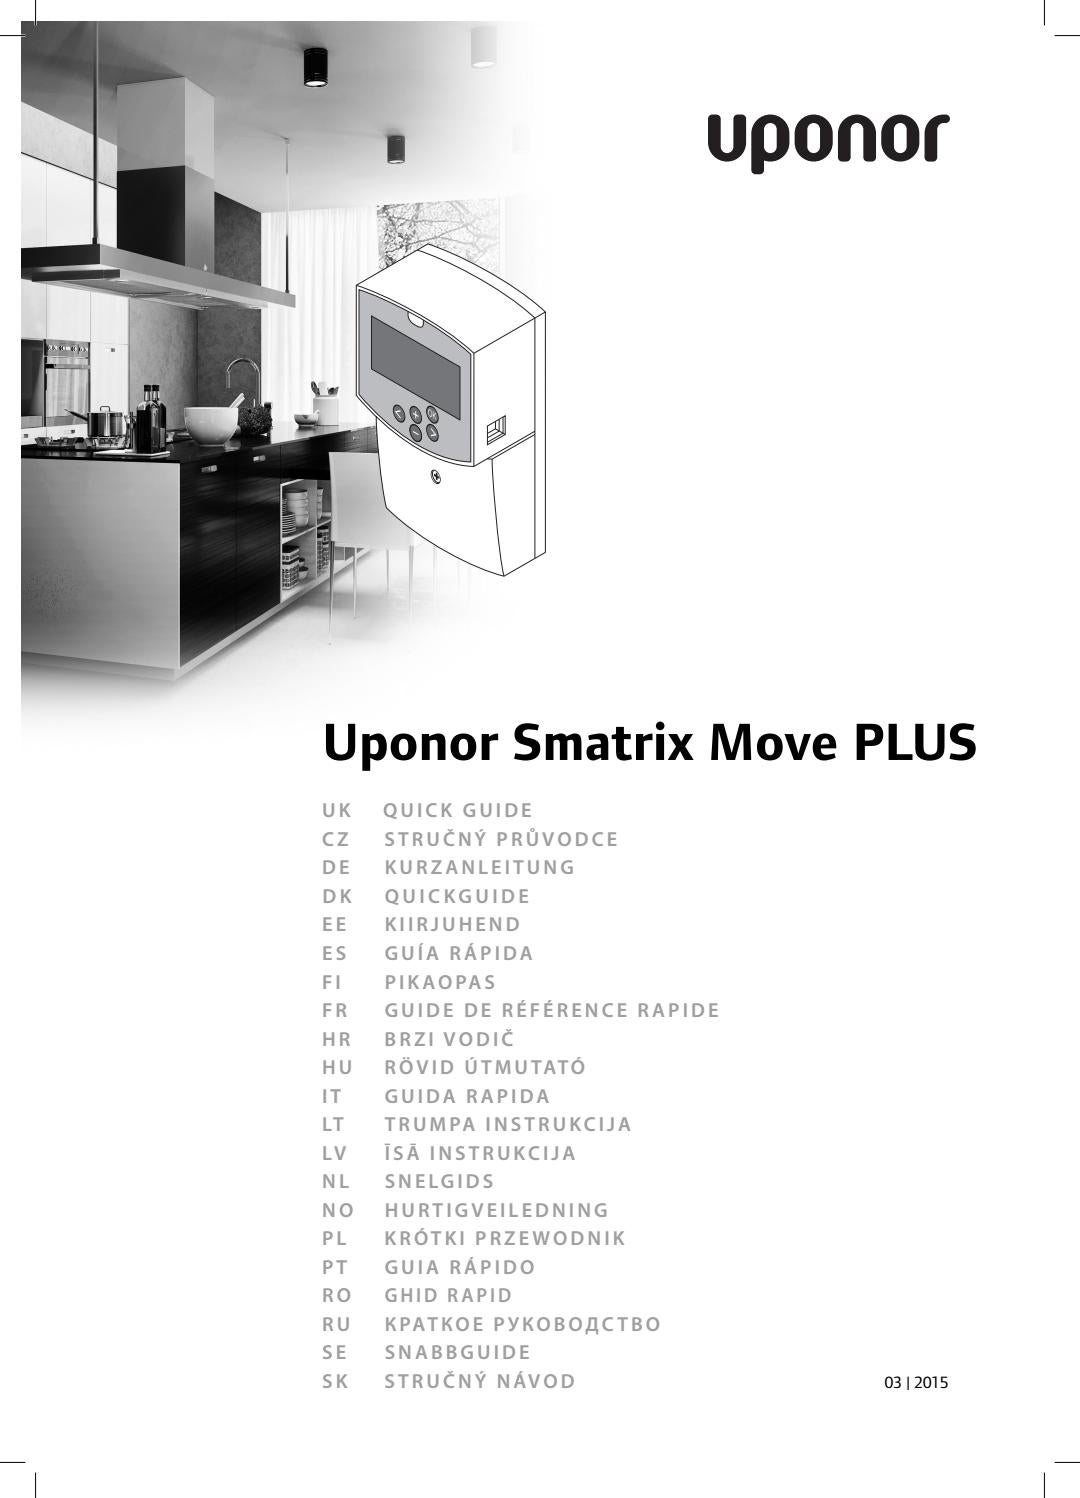 Uponor Qg Smatrix Move Plus Int 1068128 201503 By Uponor Germany Issuu